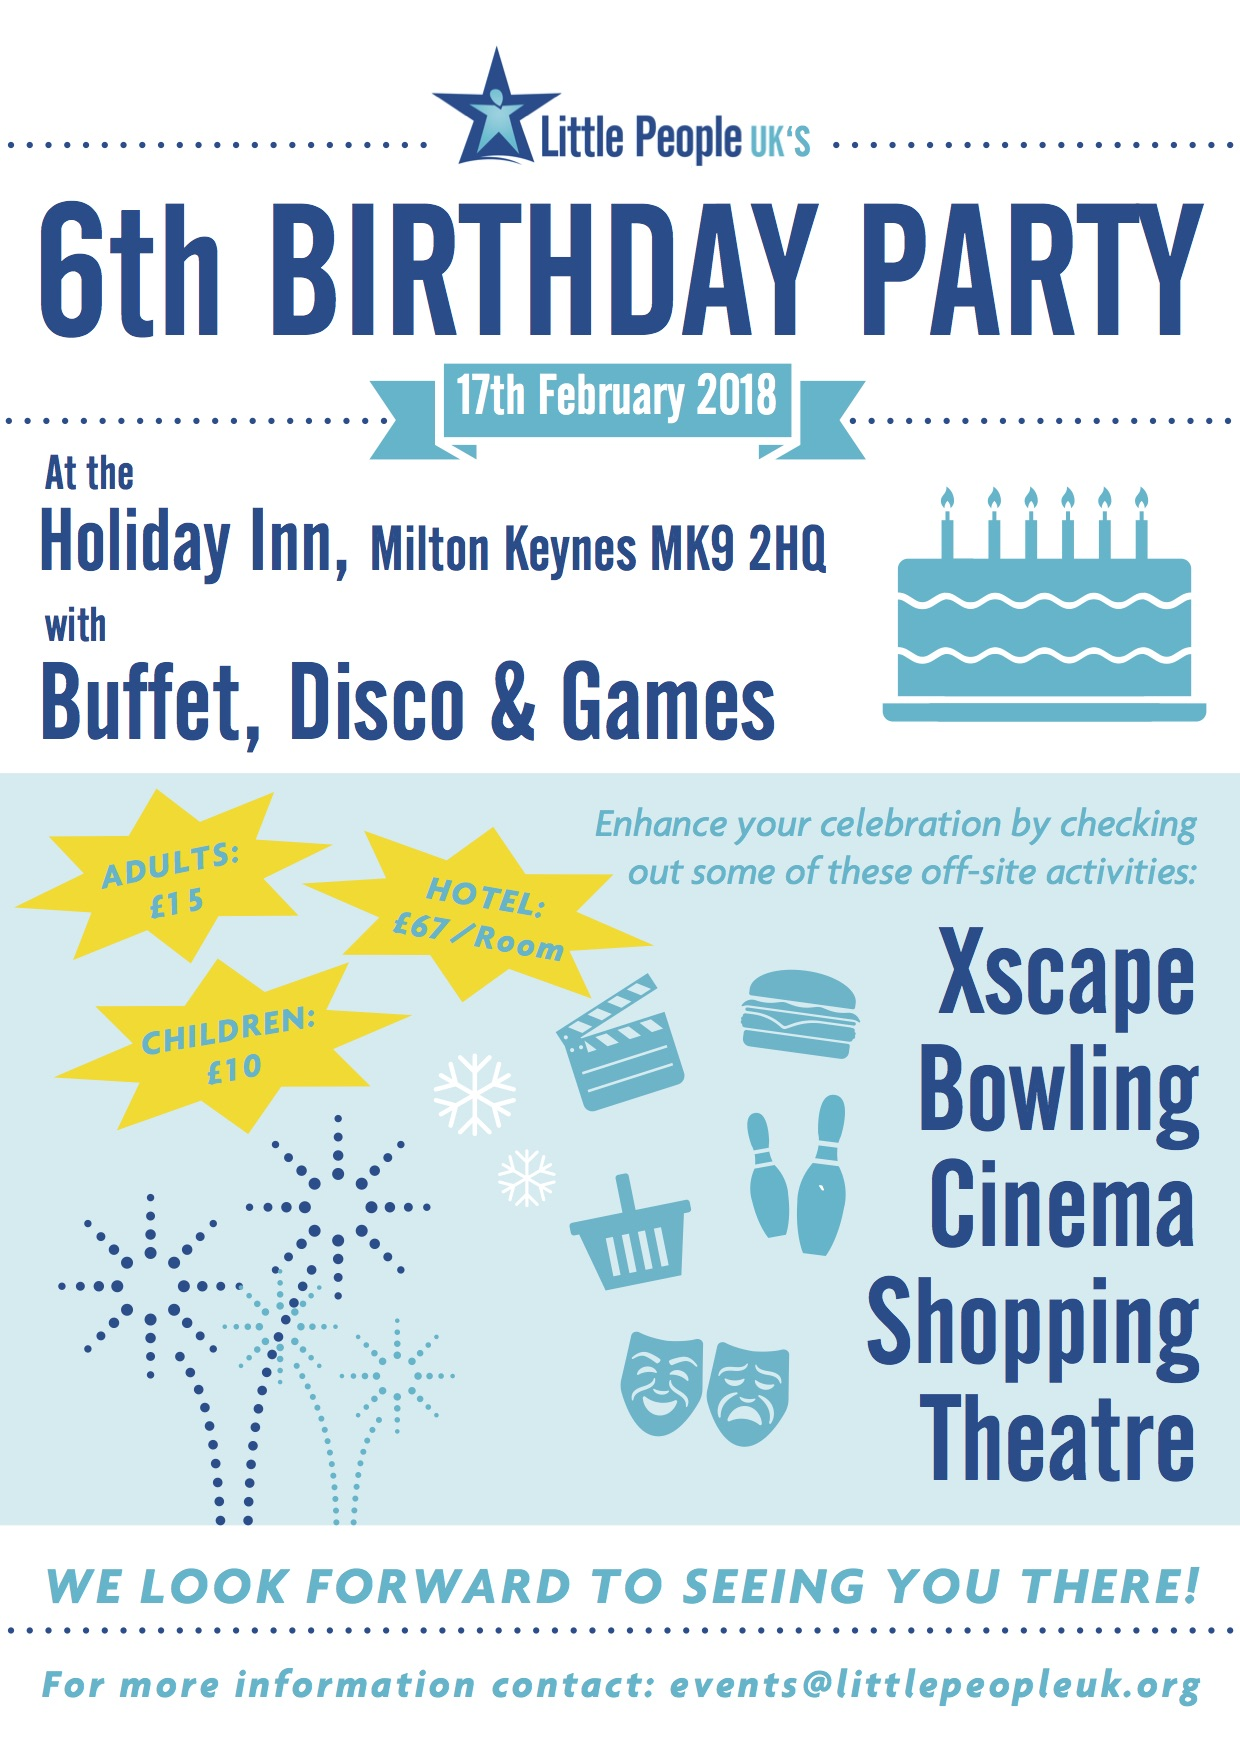 Little People UK 6th Birthday Party Poster copy